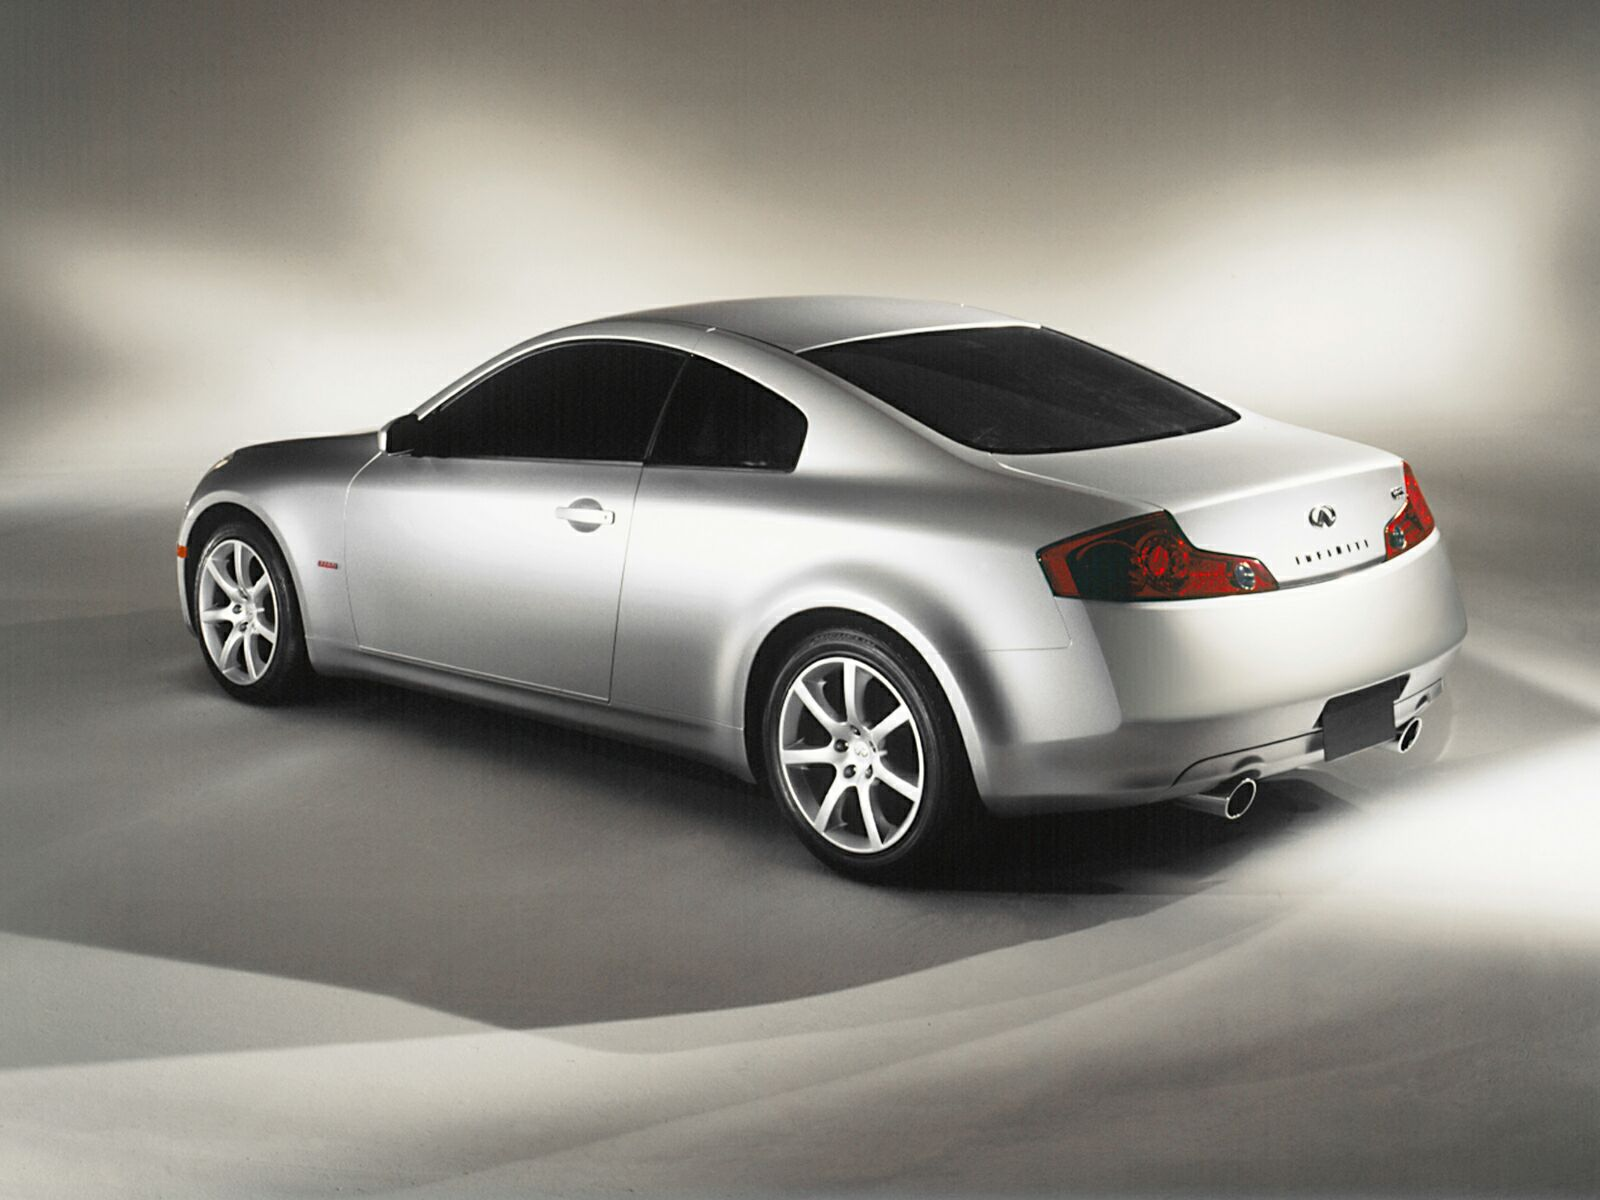 New Infiniti G35 Coupe >> Infiniti G35 Coupe Photos Photogallery With 20 Pics Carsbase Com